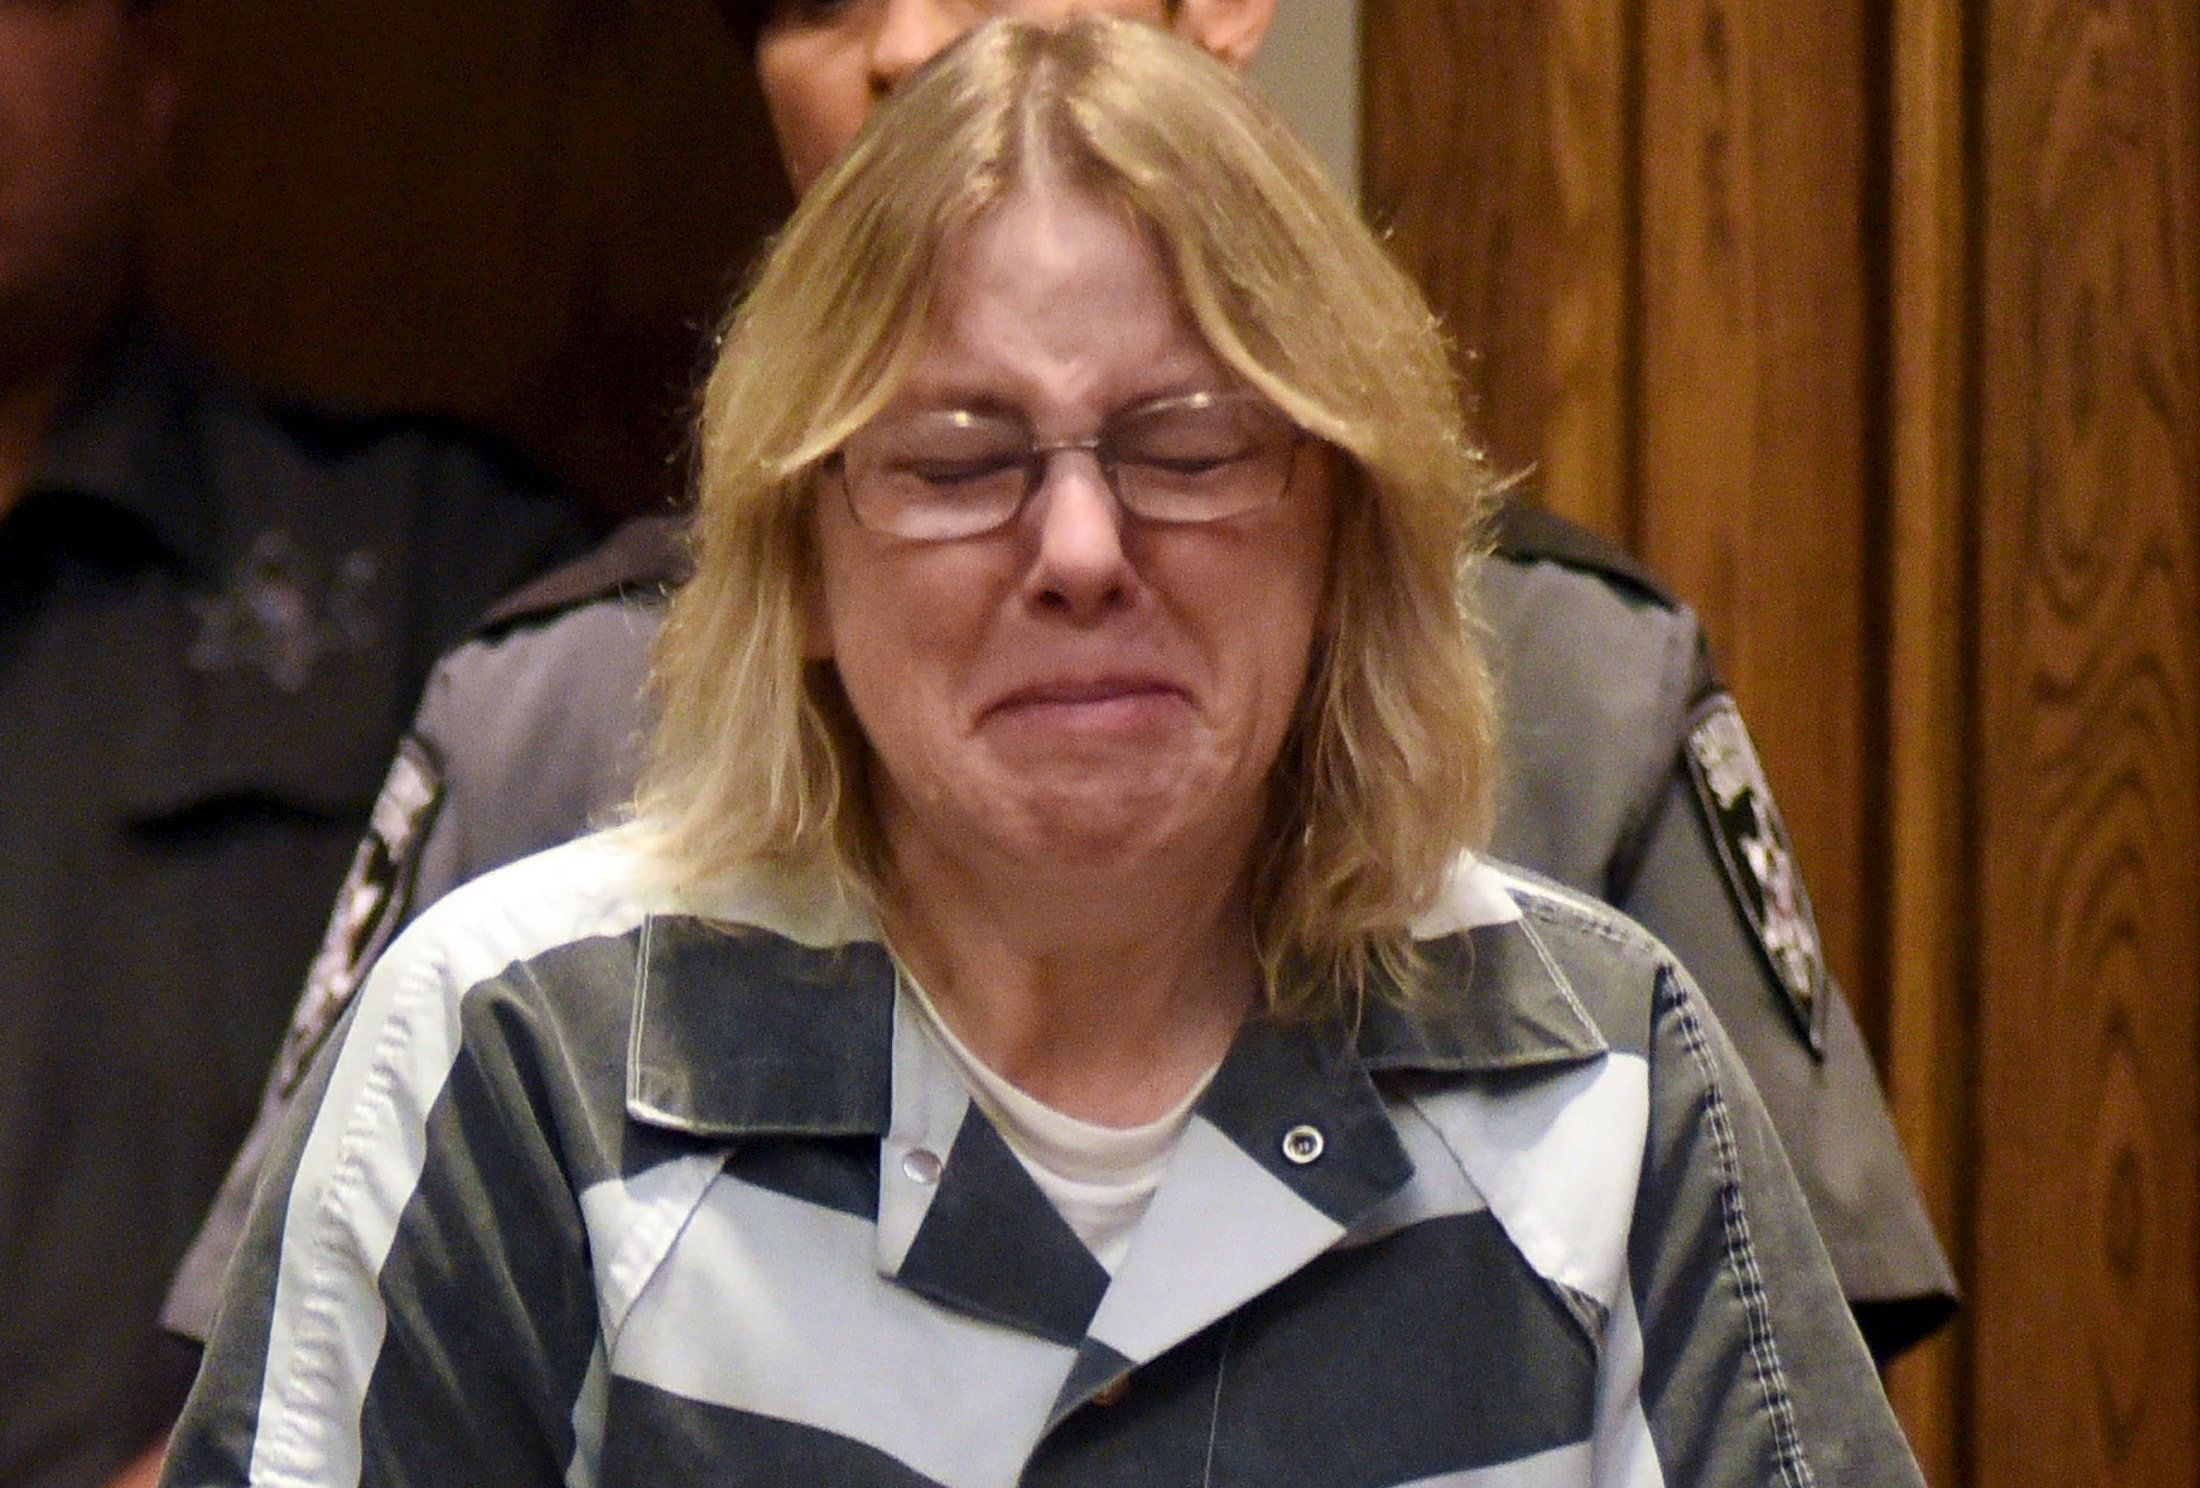 Joyce Mitchell cries during sentencing at Clinton County Court in Plattsburgh, New York.